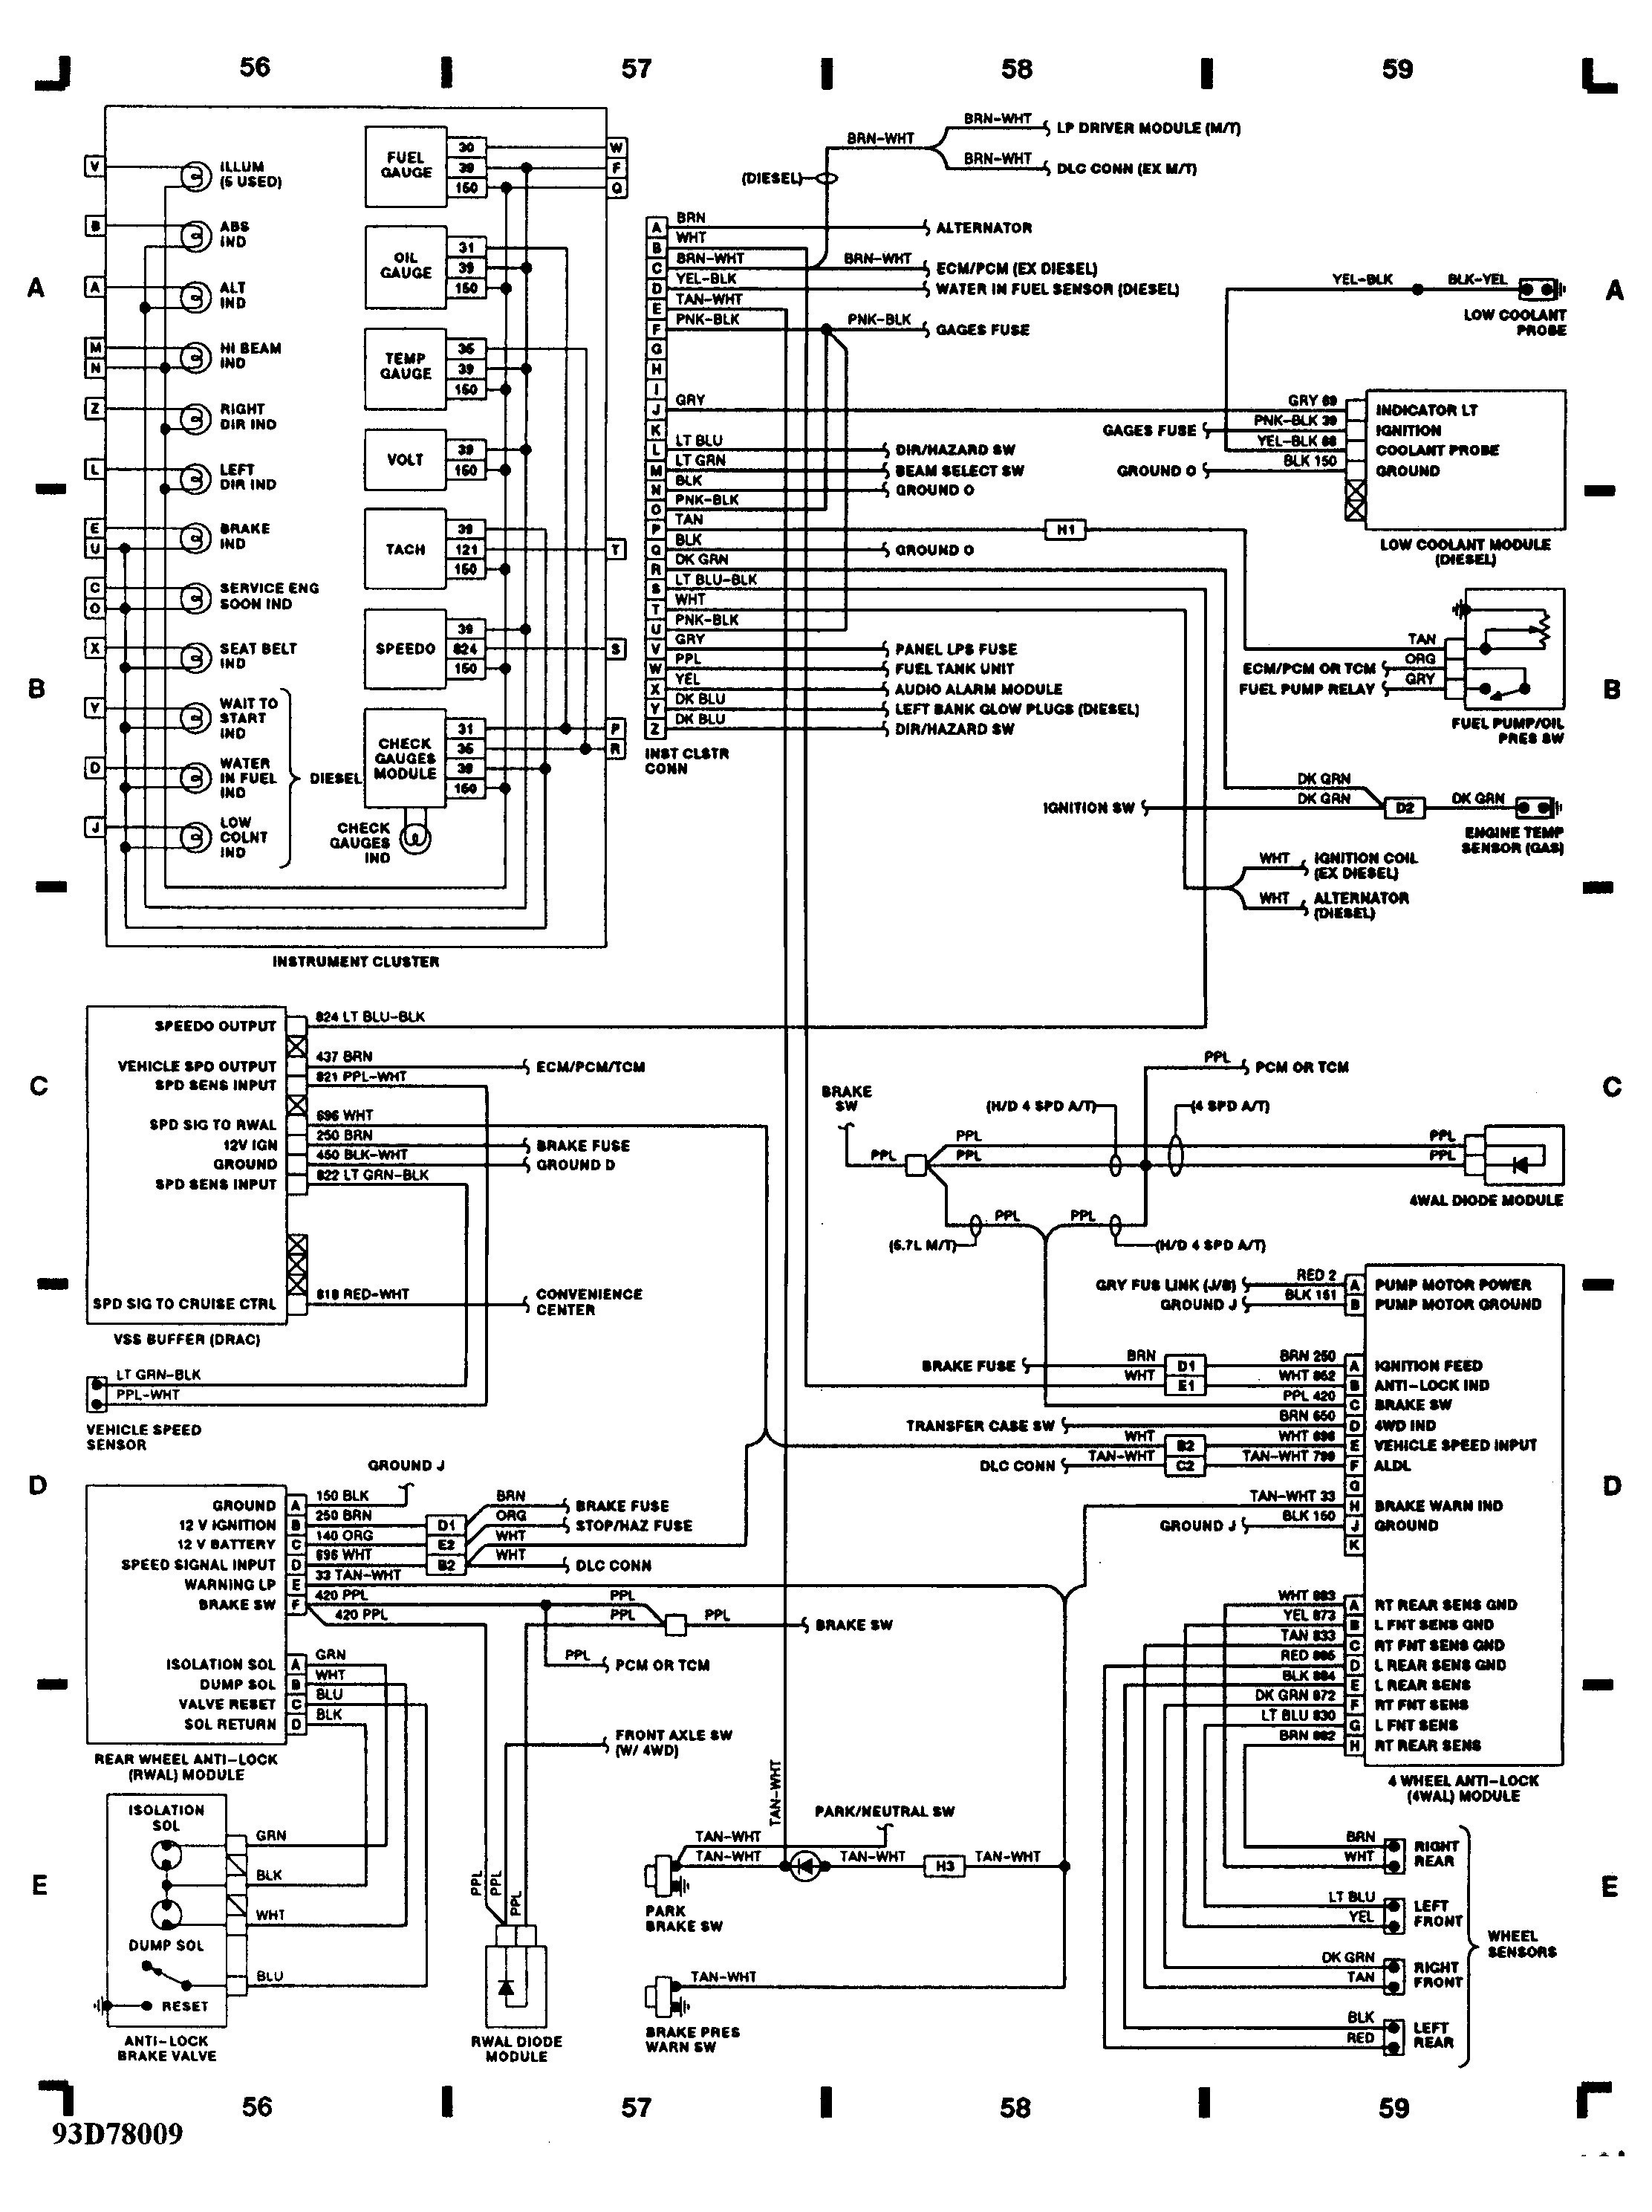 95 S10 Engine Wire Harness Diagram Wiring Library V Twin